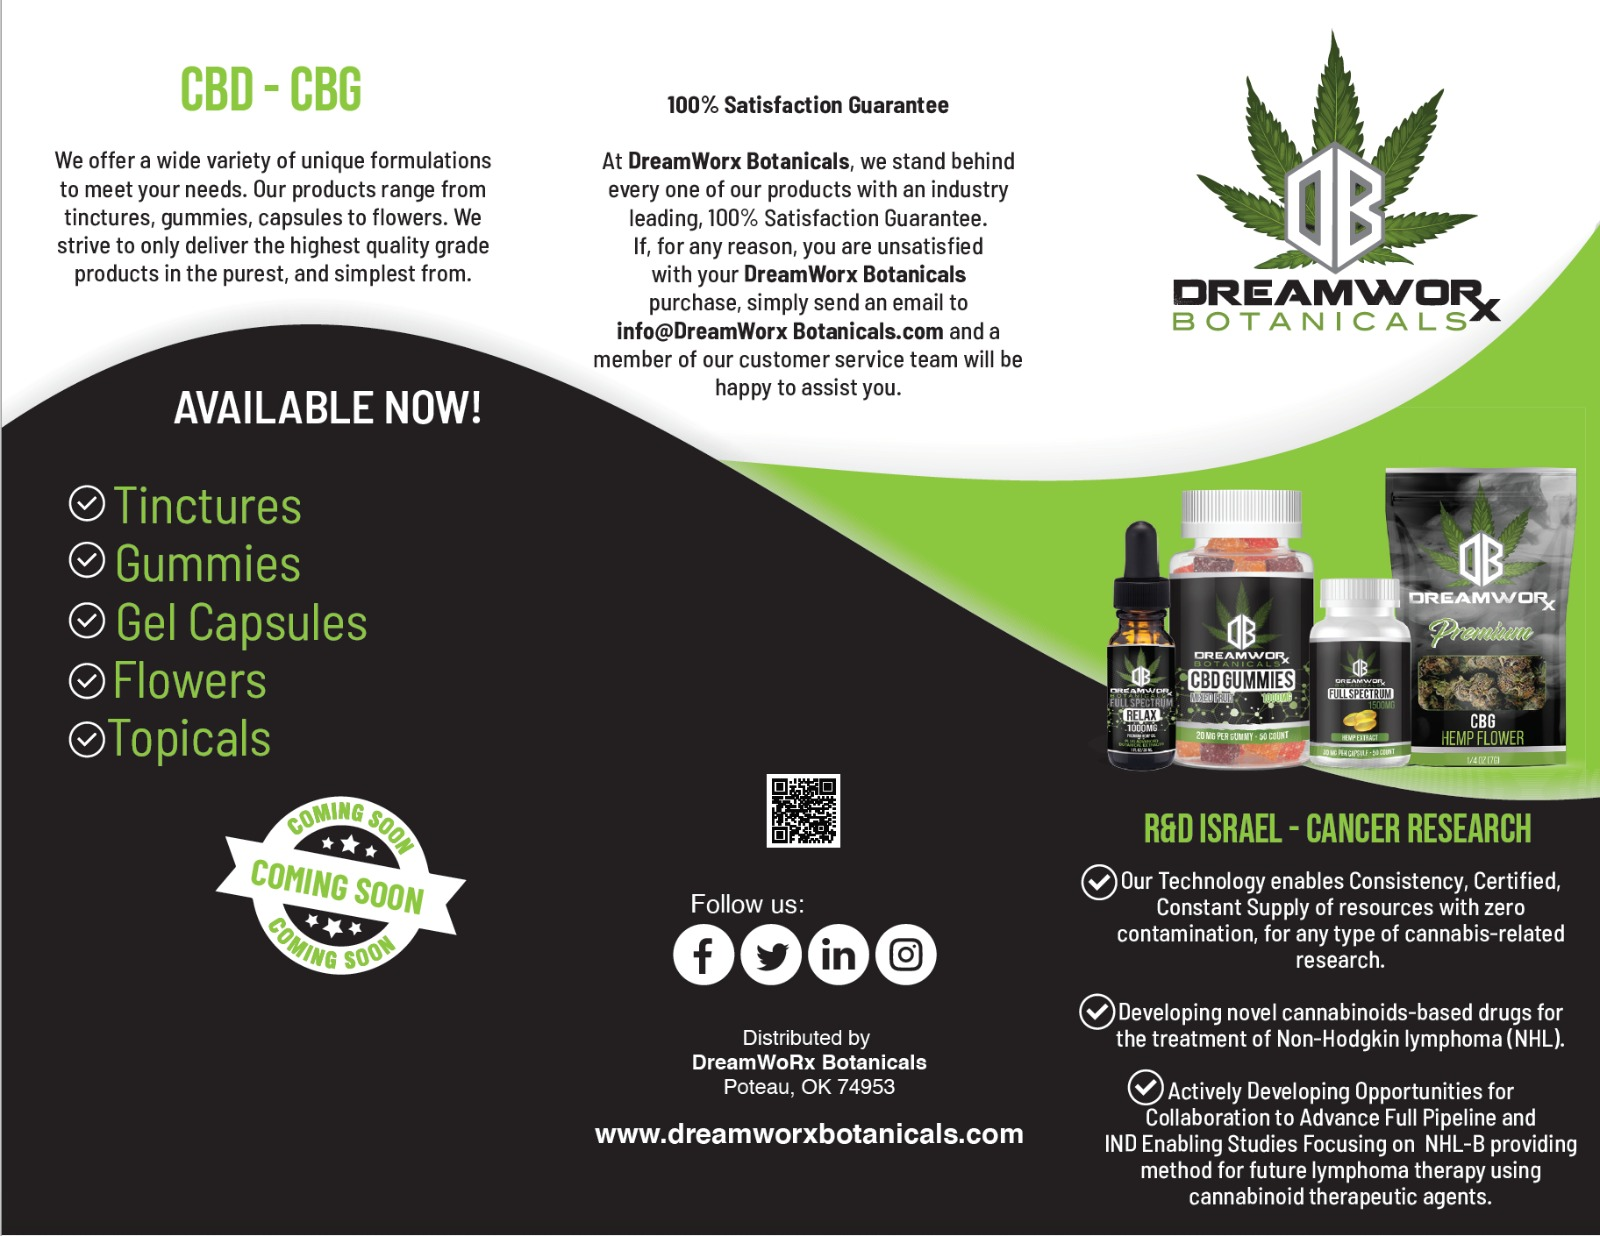 Private Label CBD Oil for Pets - Dog Treats - Organic & Human Grade